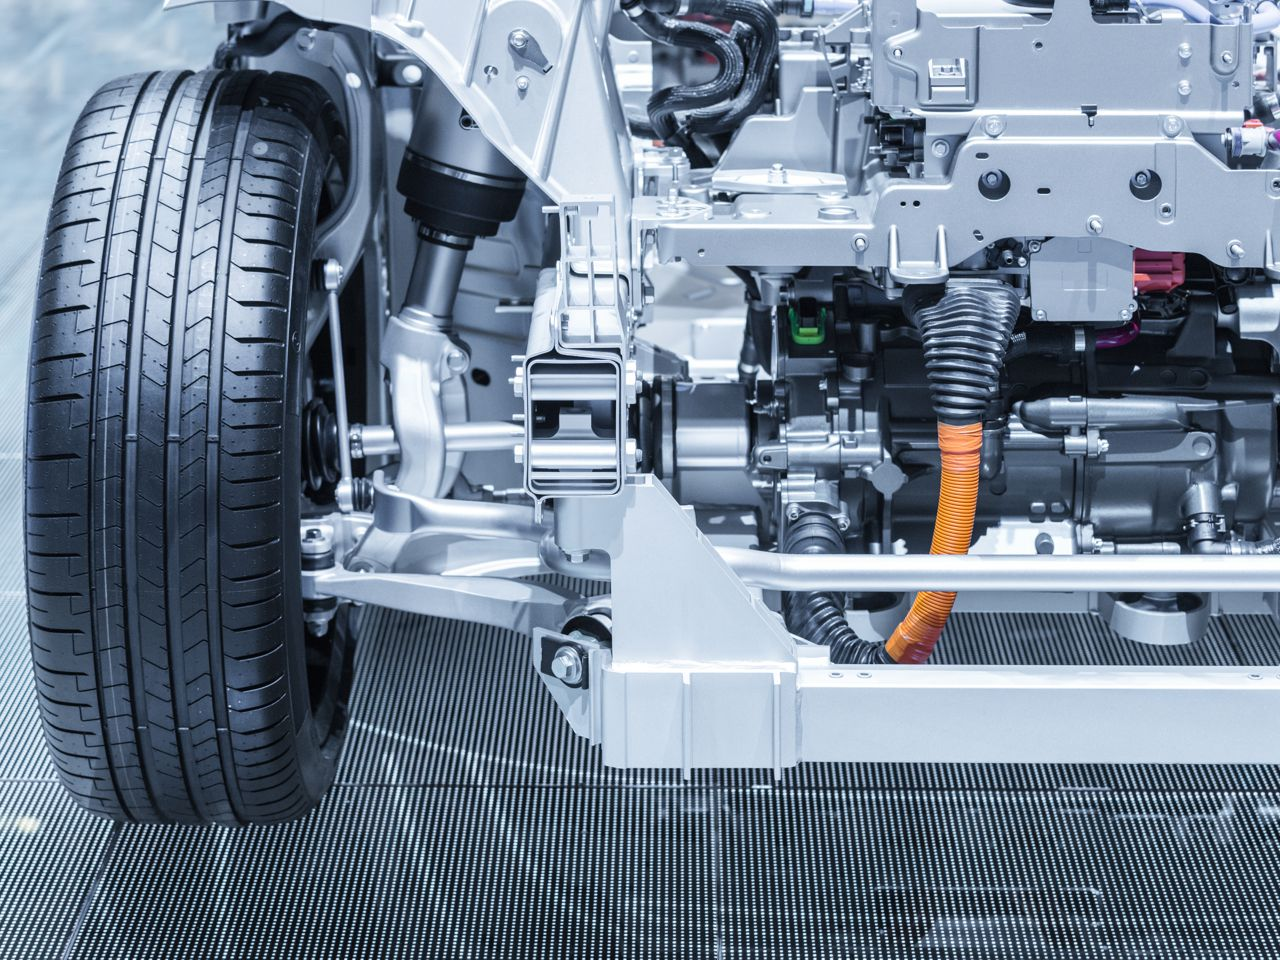 Chassis of hybrid electric car with drive train